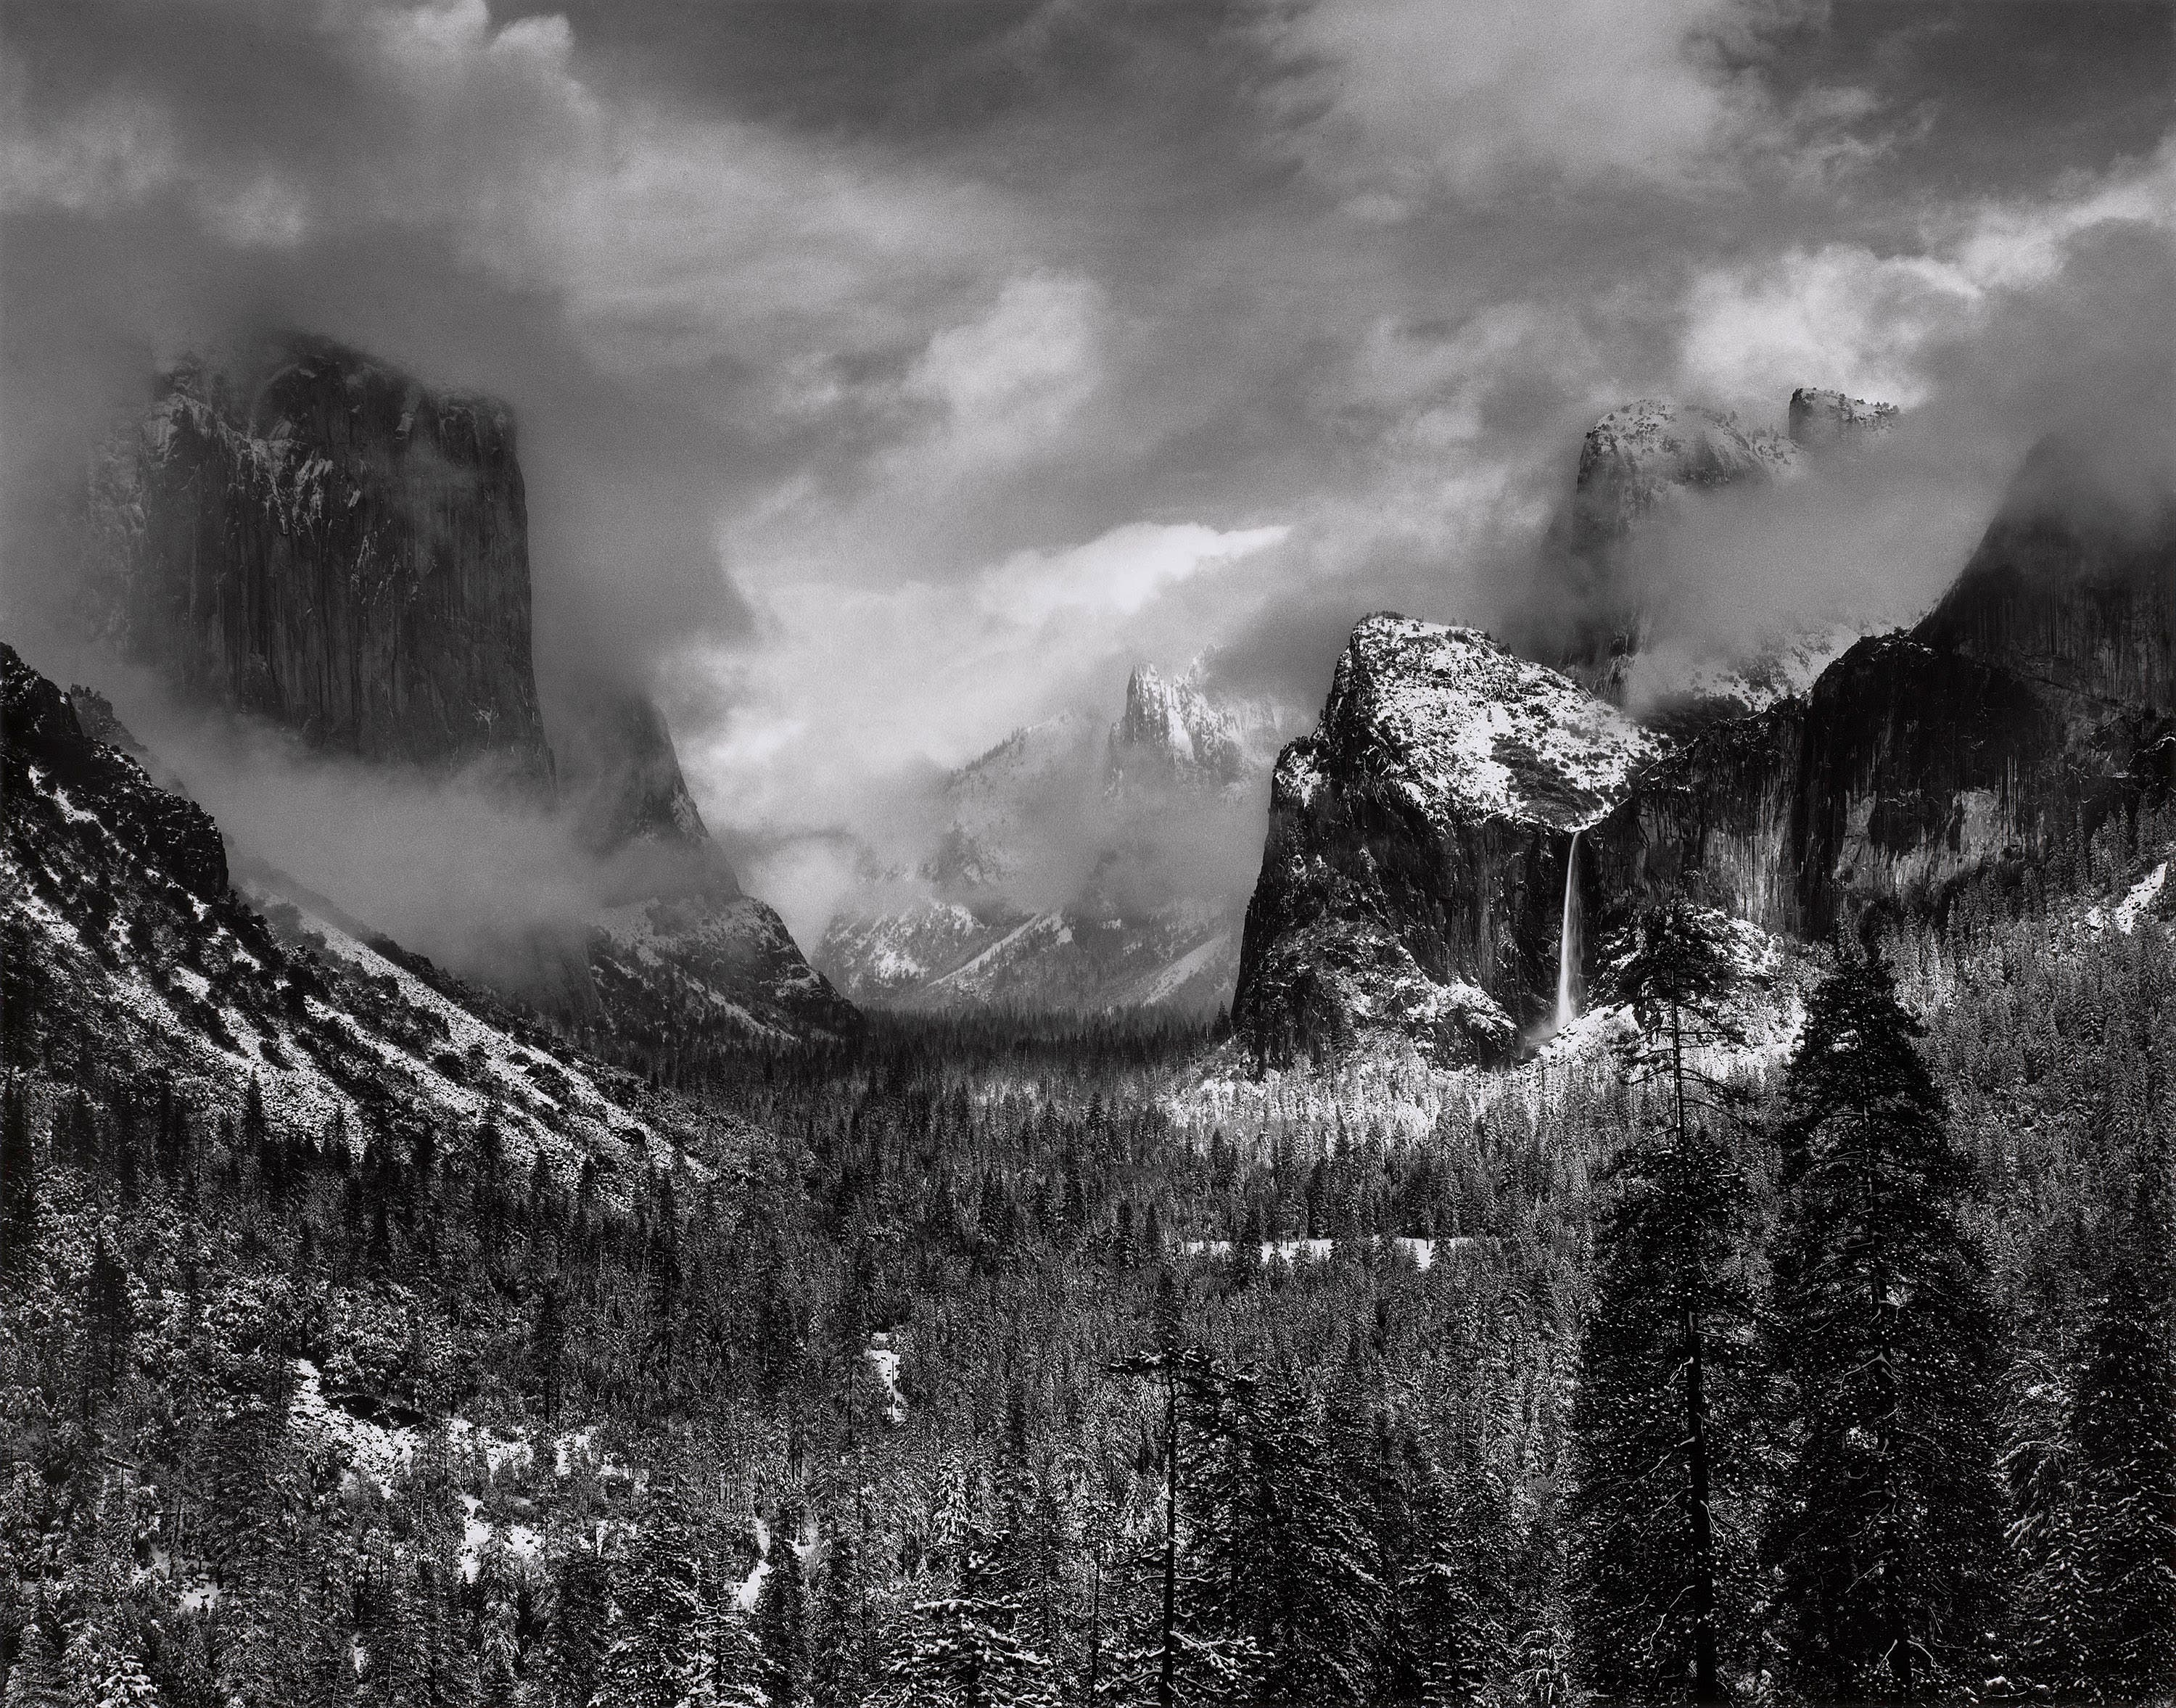 MFA Boston Explores Ansel Adams' Legacy in Upcoming Exhibit